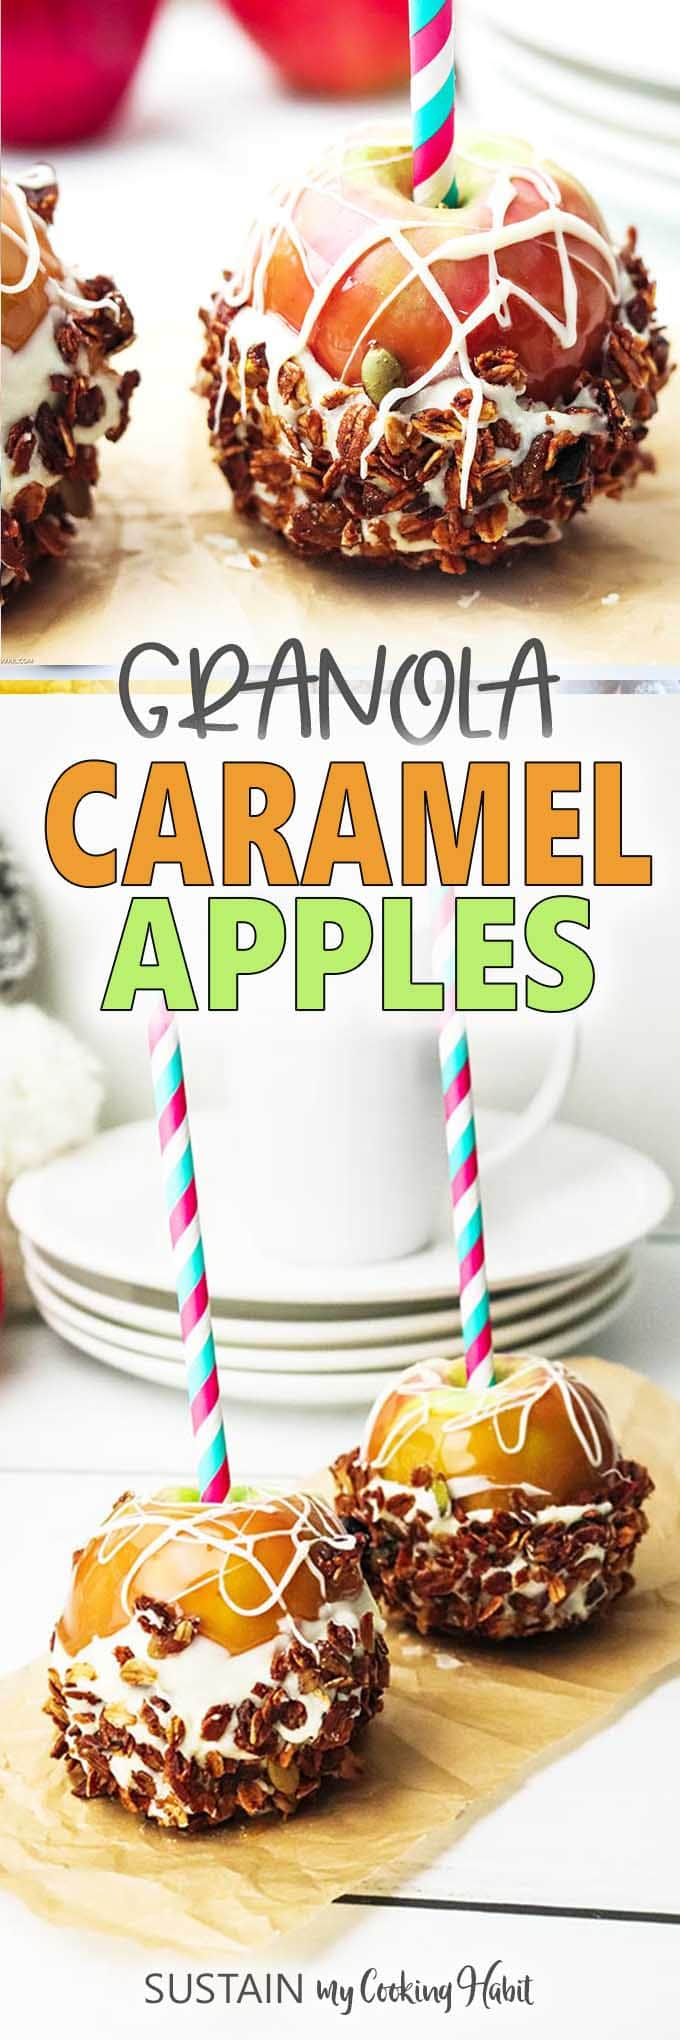 Collage of images with text overlay showing granola-dipped caramel apples.